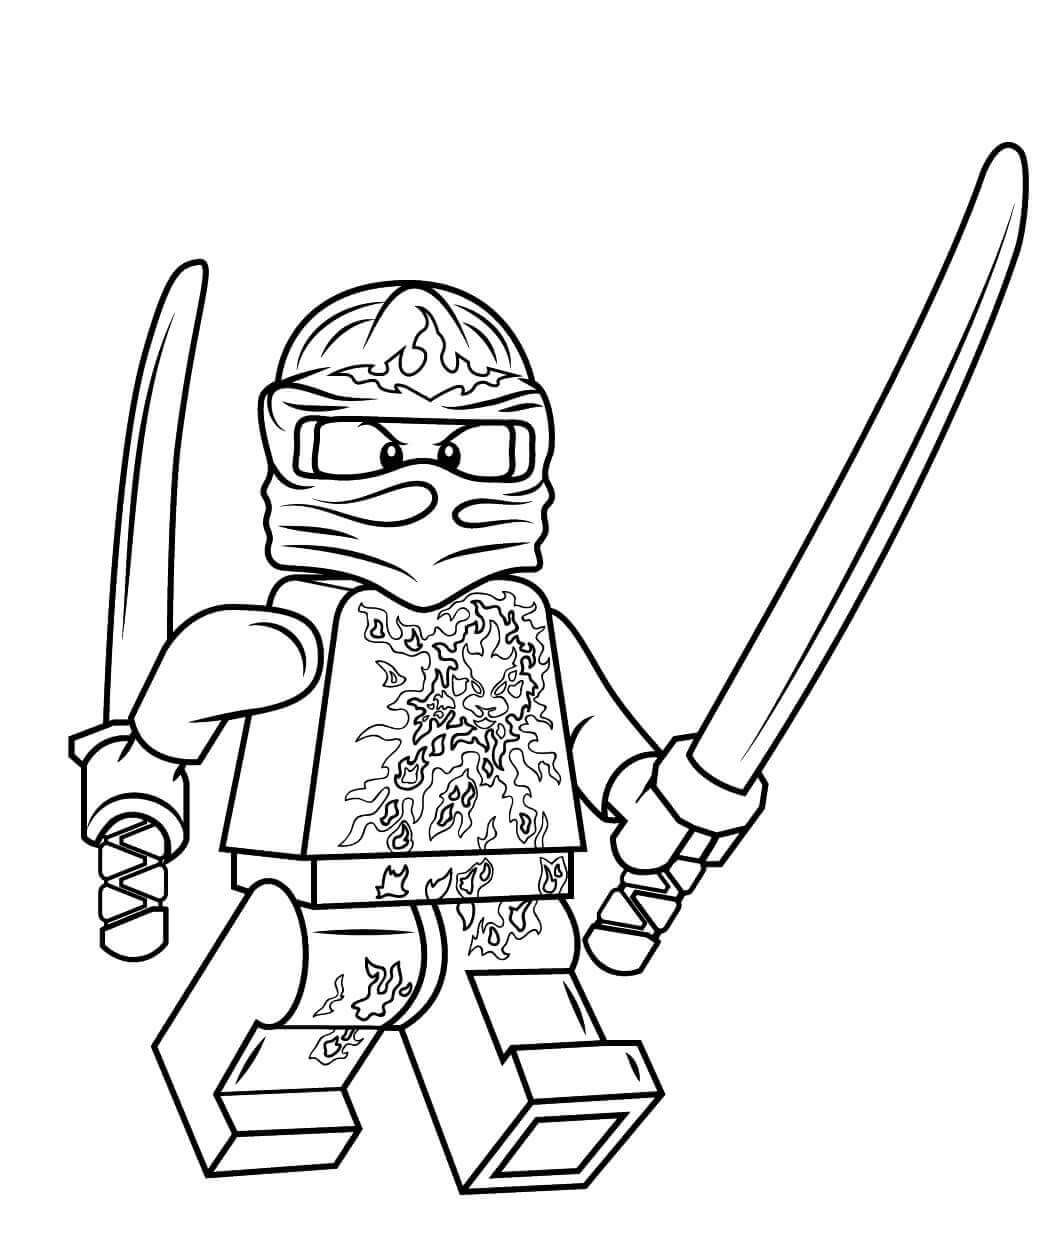 30 Free Printable Lego Ninjago Coloring Pages Ninjago Coloring Pages Super Coloring Pages Lego Movie Coloring Pages